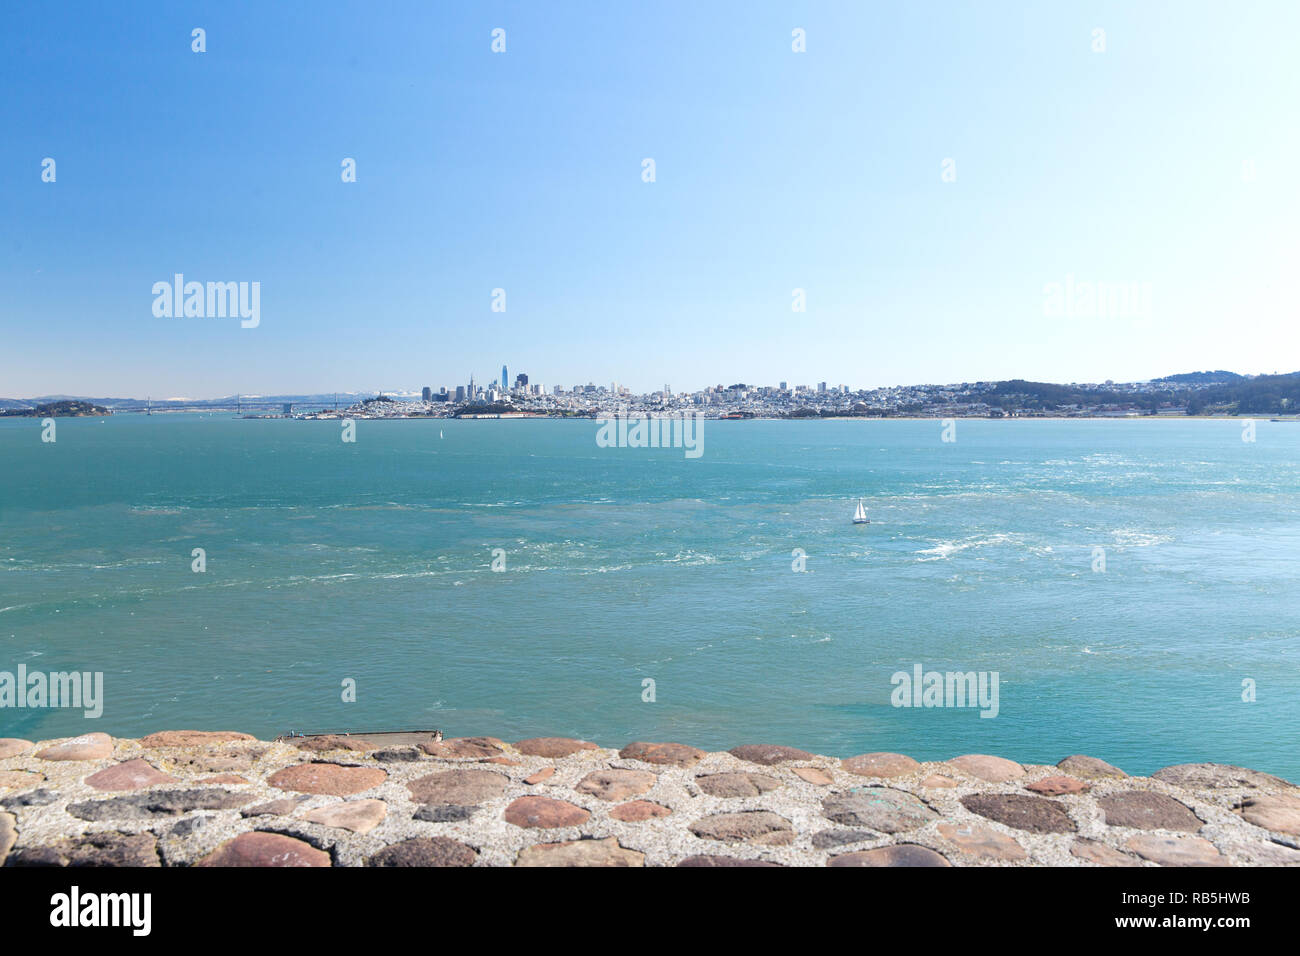 view of san francisco city and pacific ocean - Stock Image